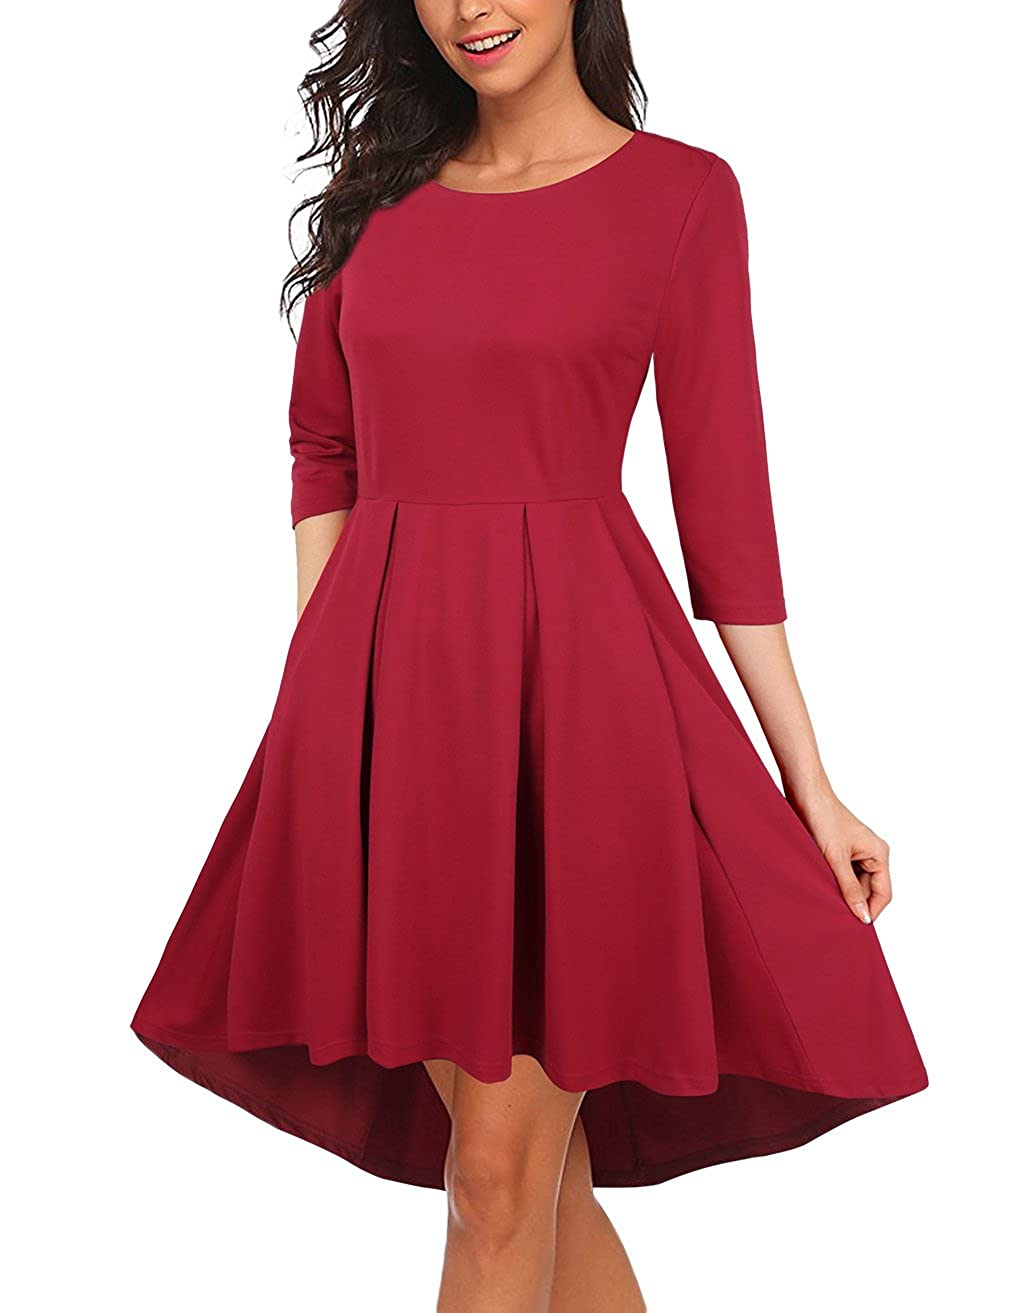 4628991bcc Top 10 wholesale Buy Cocktail Dress - Chinabrands.com